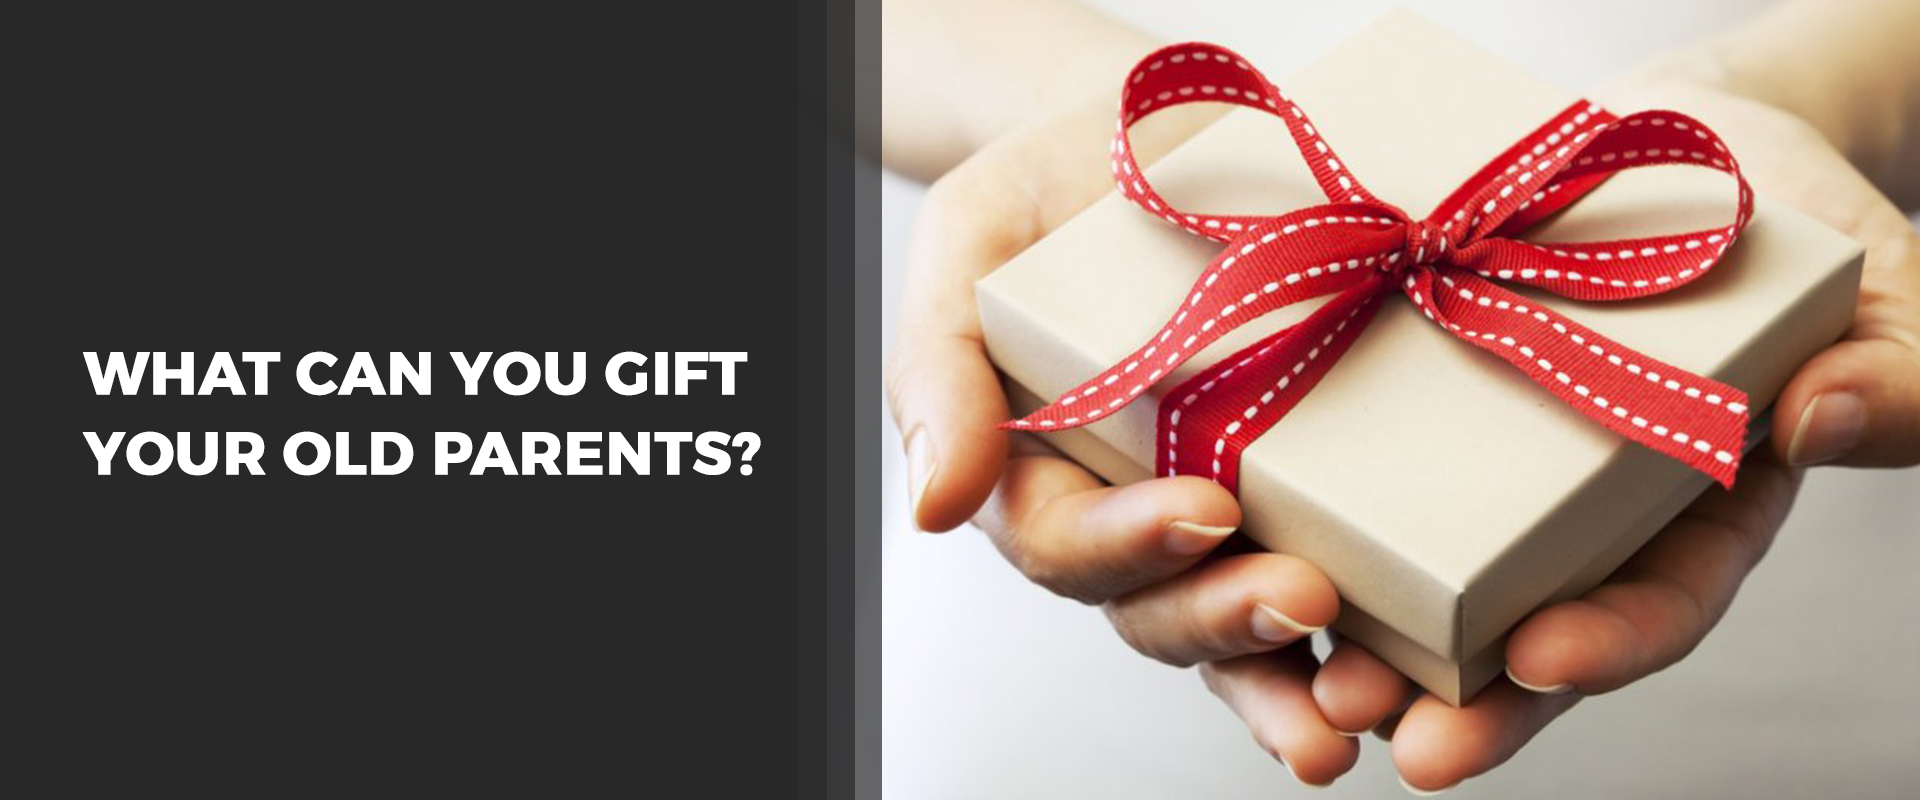 What Can You Gift Your Old Parents